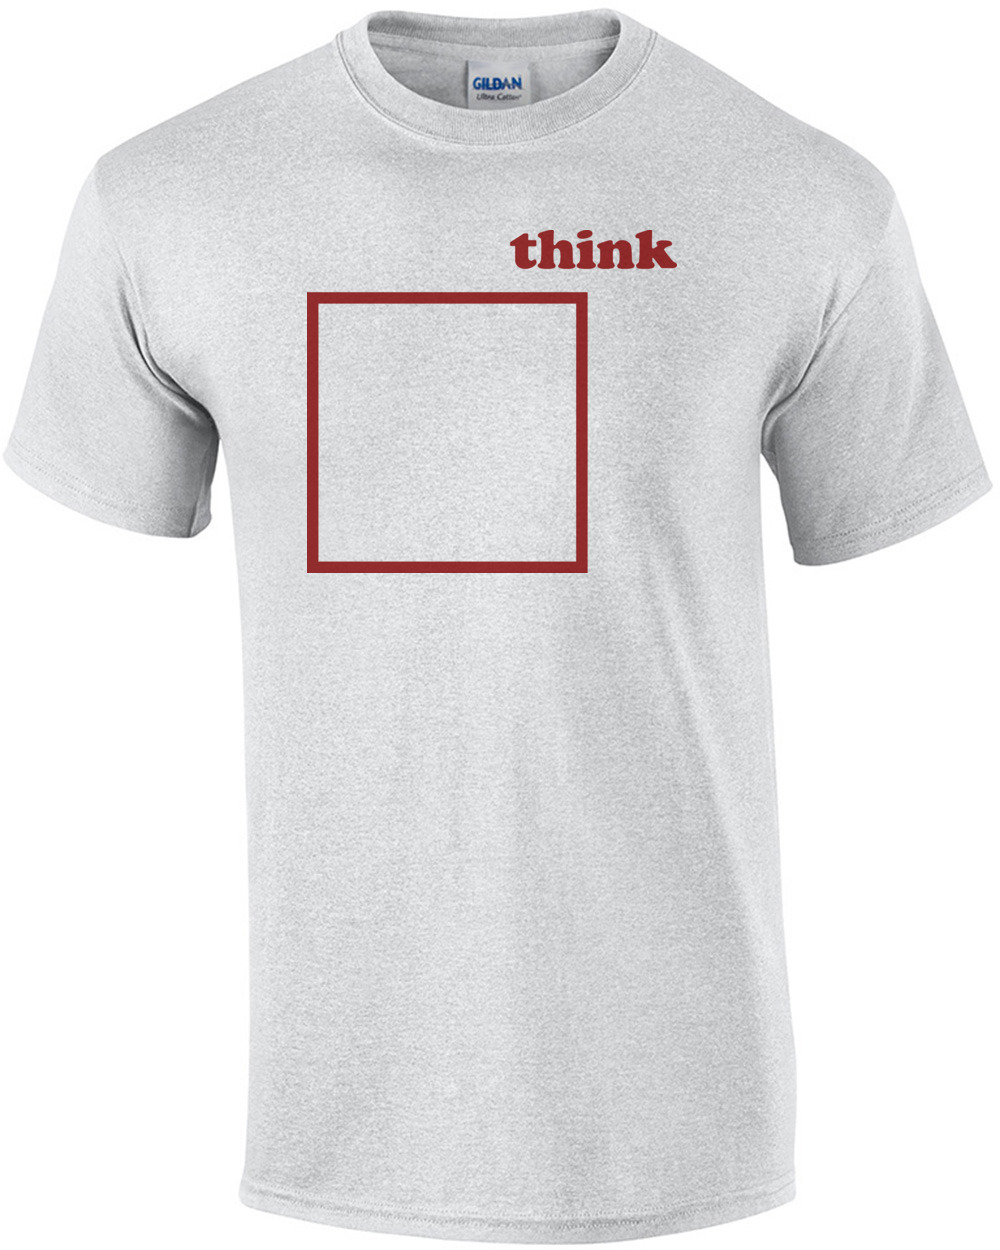 a06f368c3 Think outside the box - Funny T-Shirt shirt